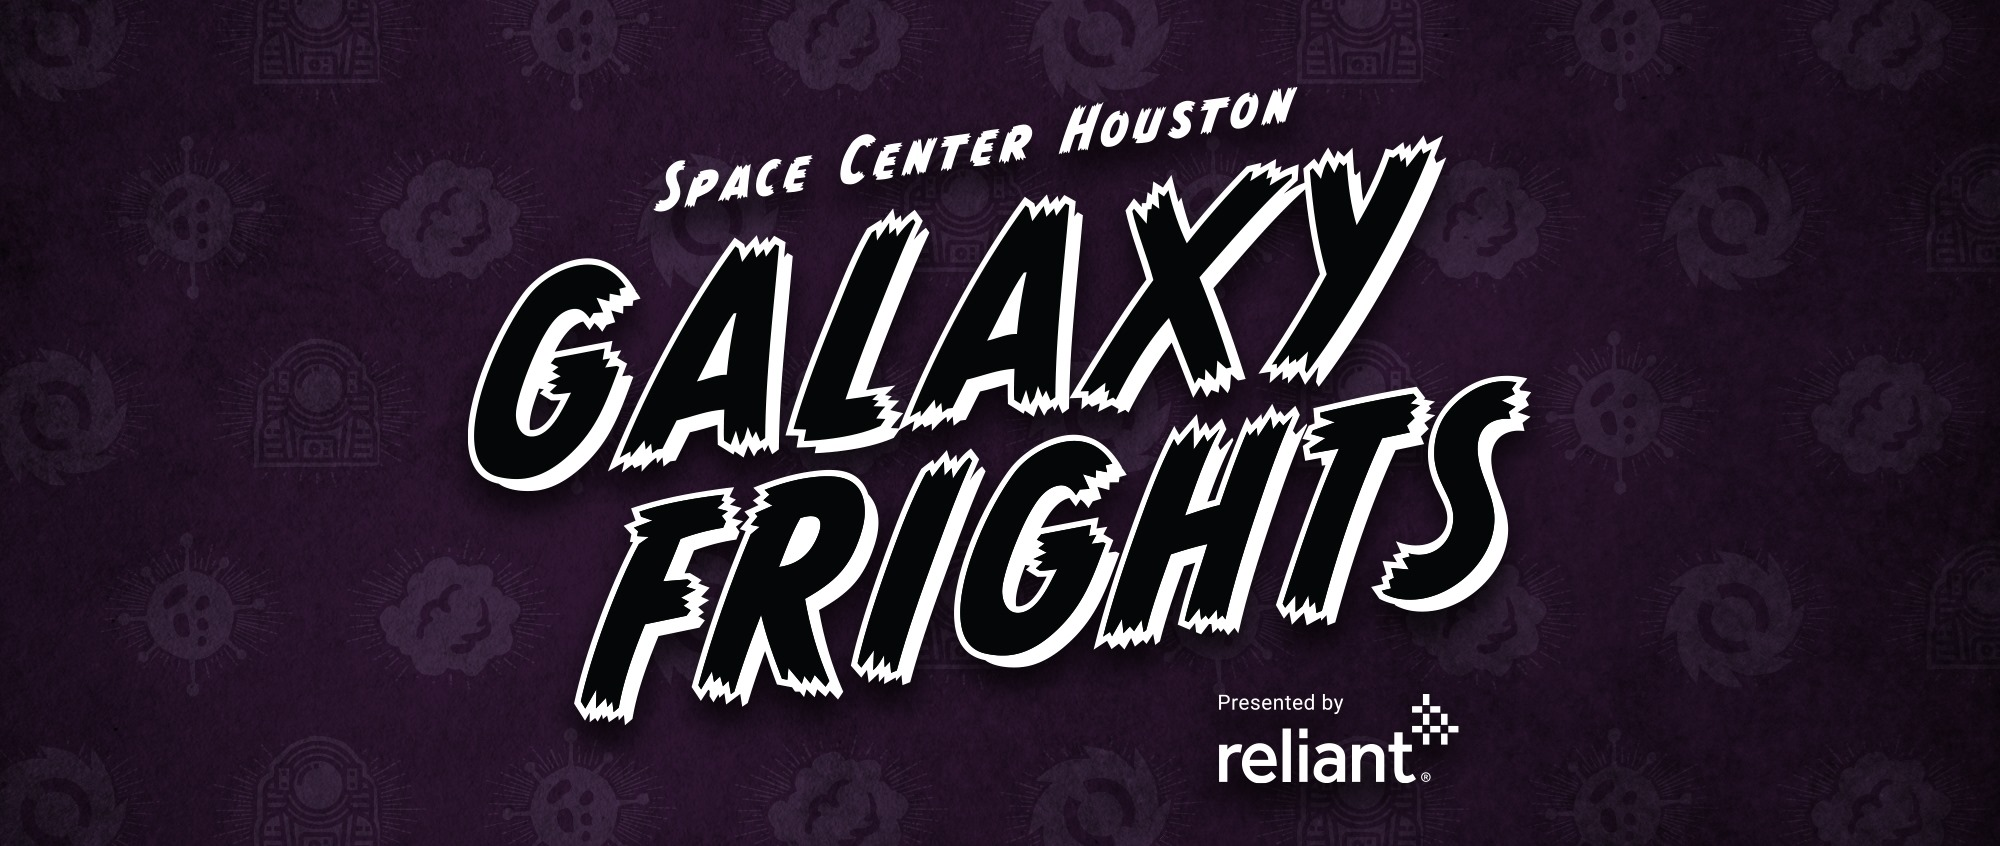 Space Center Houston's Galaxy Frights, presented by Reliant Returns this October